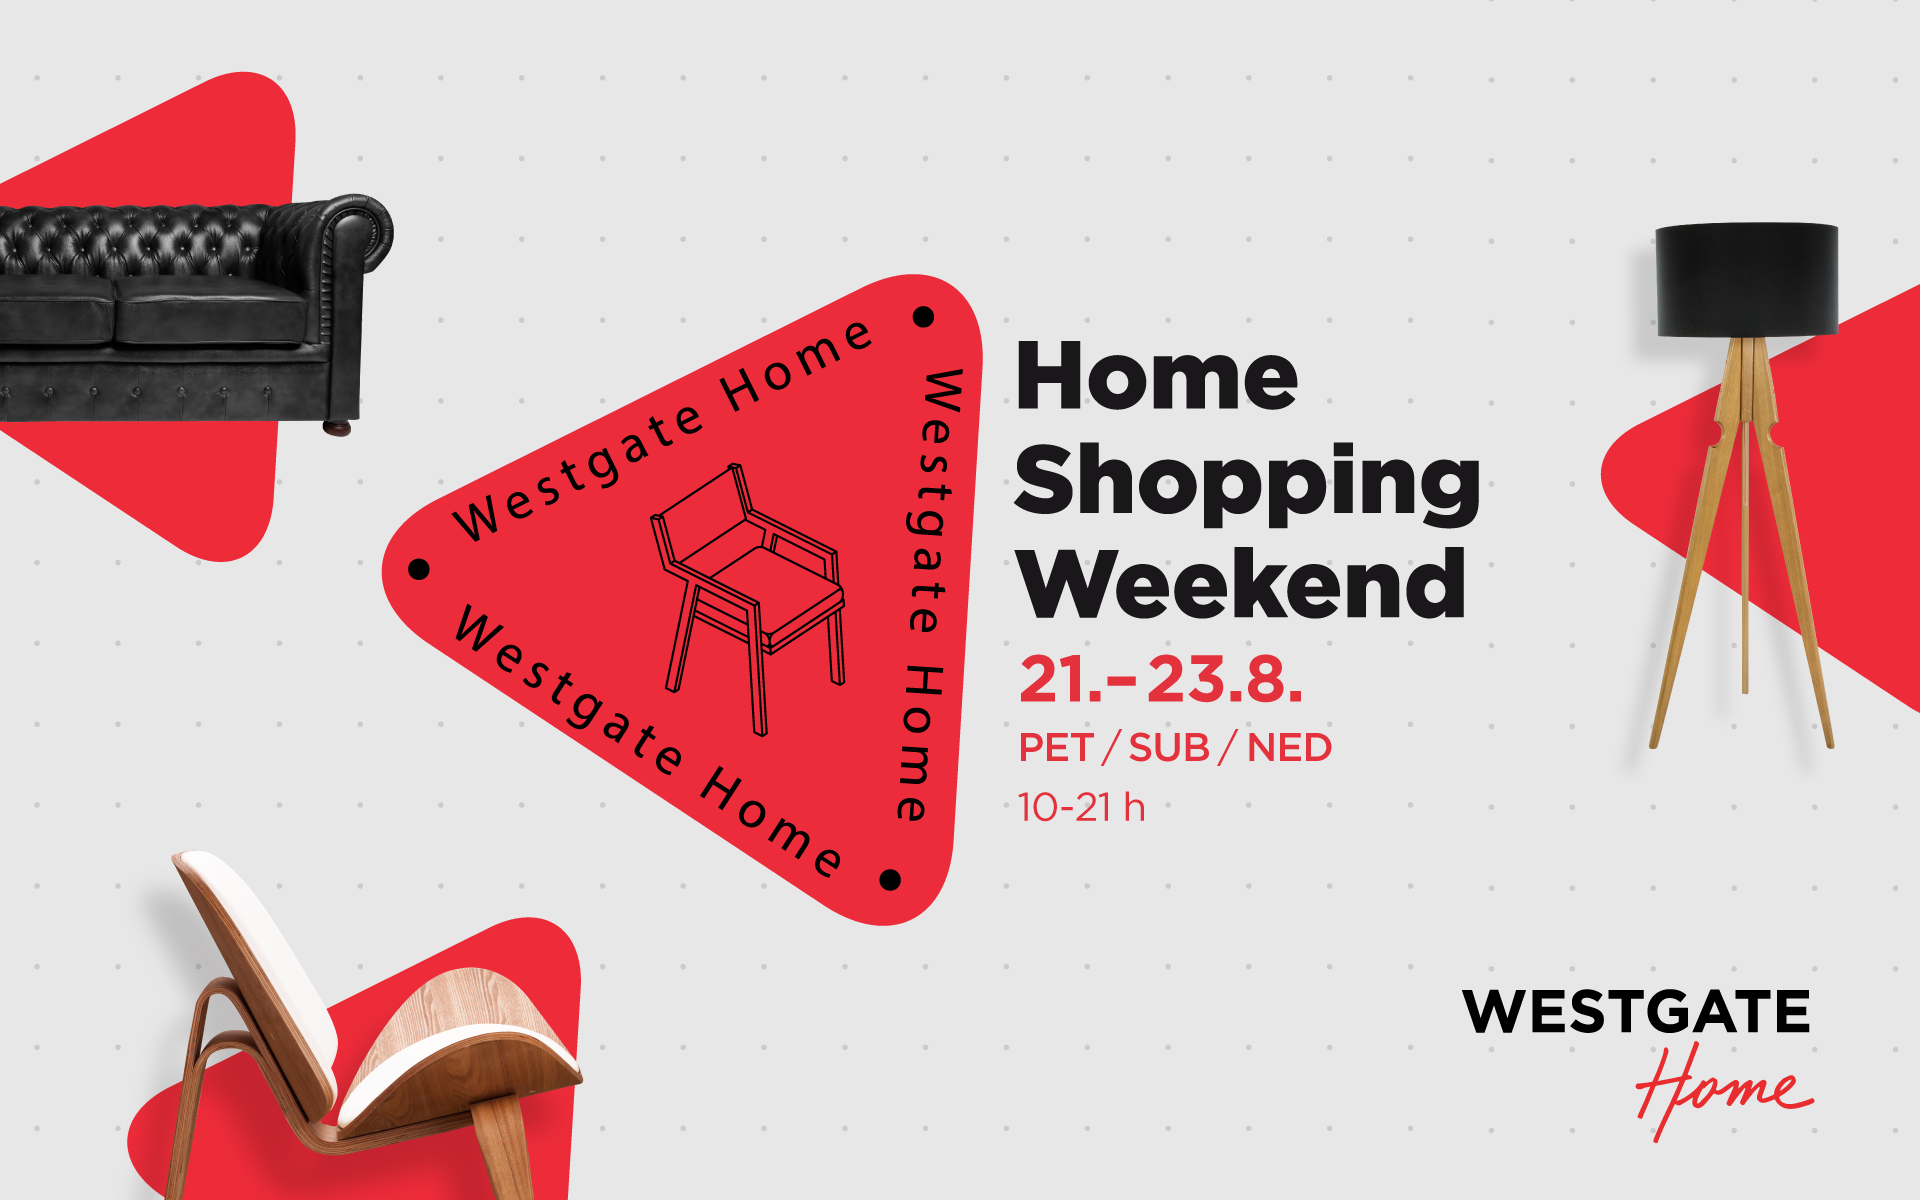 Home Shopping Weekend 21. - 23.8.